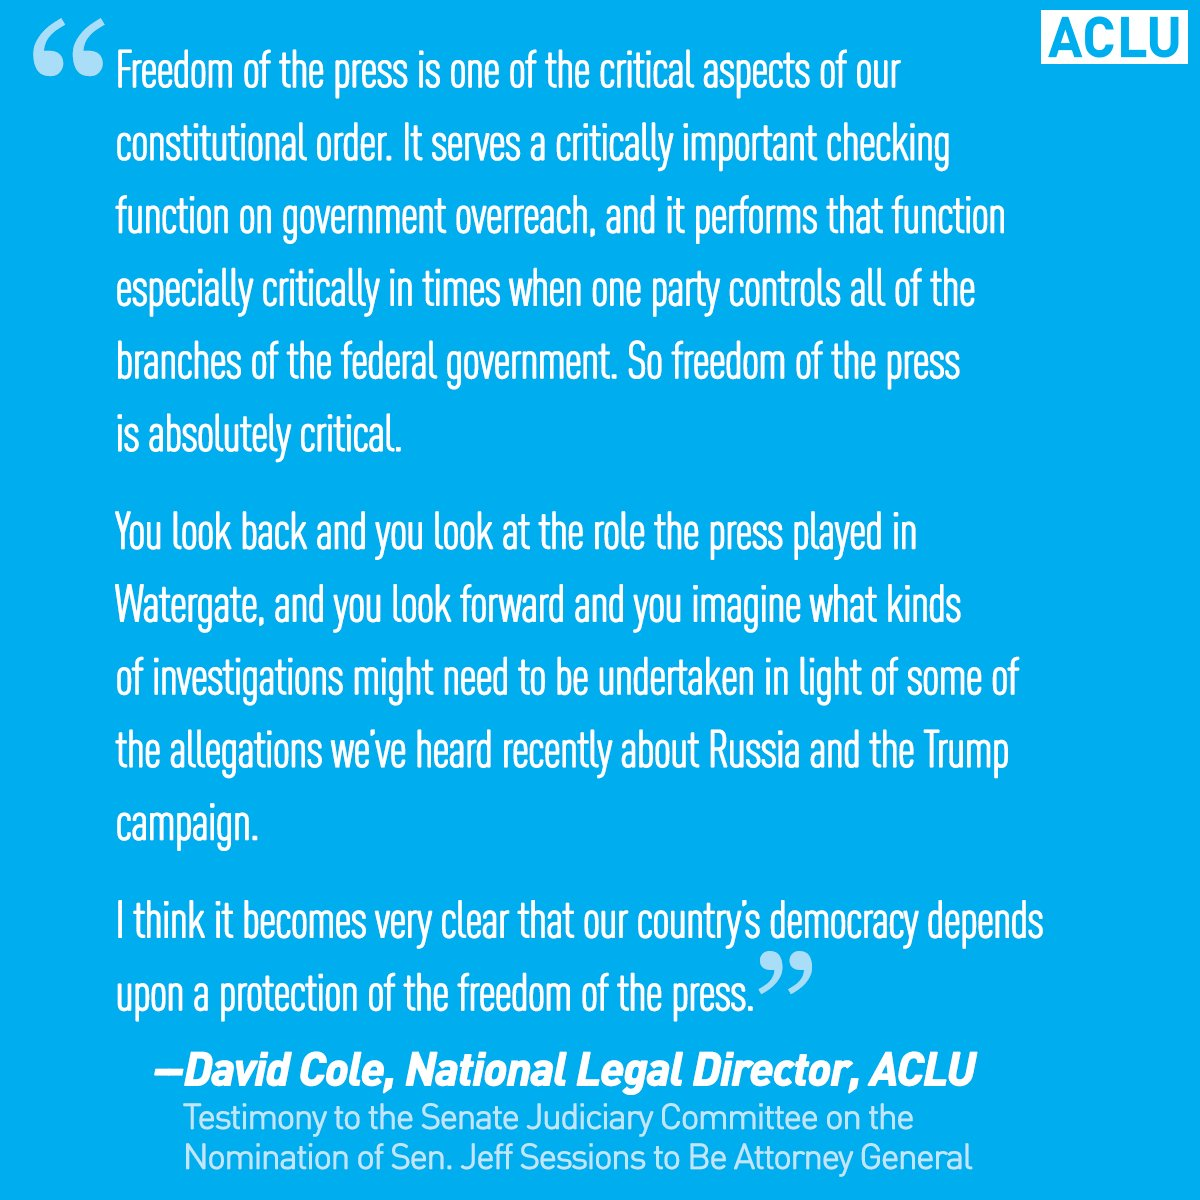 As the #TrumpPressConference happened, @DavidColeACLU spoke about the...